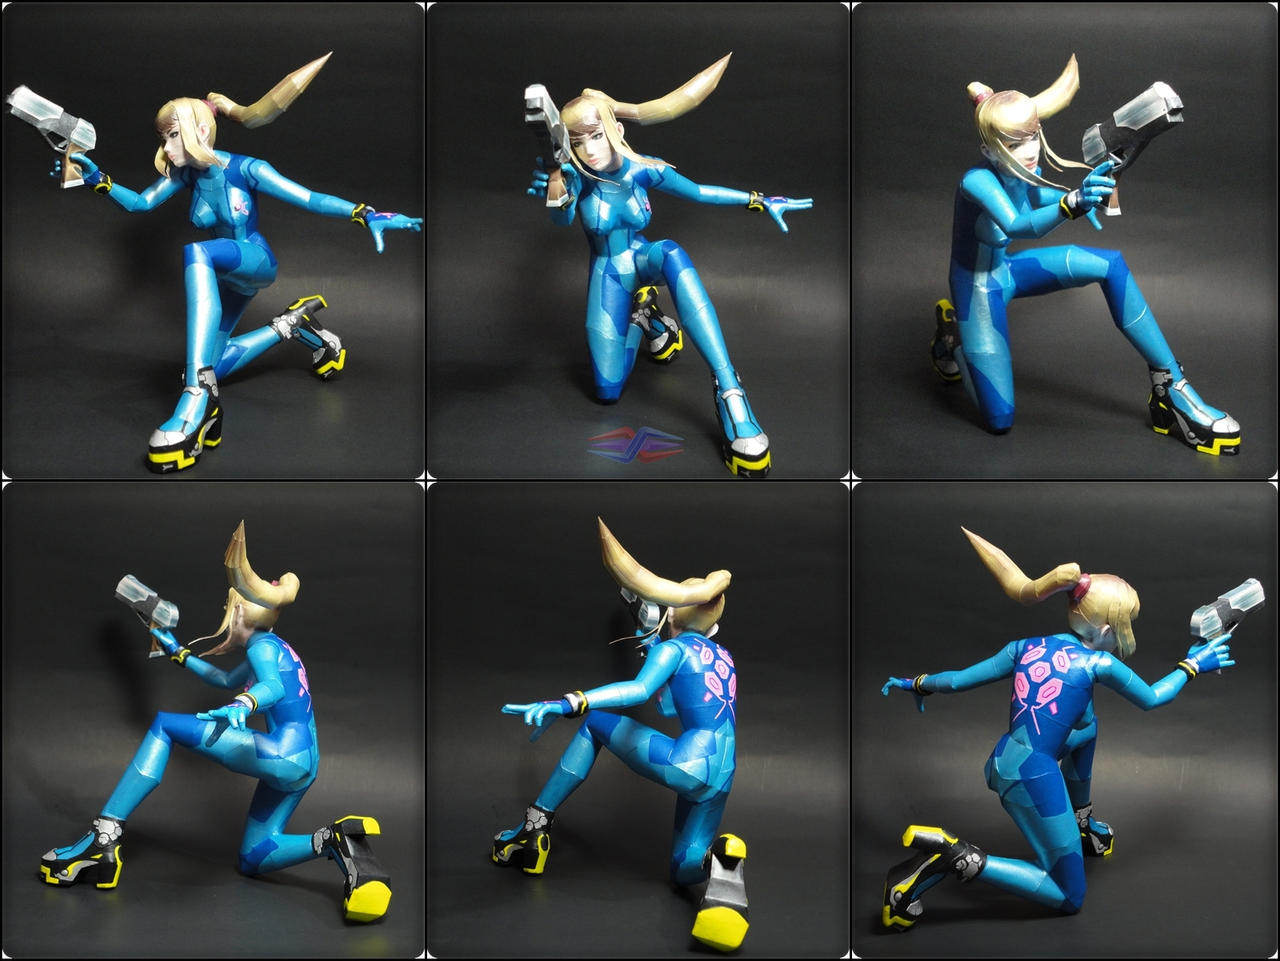 Samus Aran Zero Suit SSB4 Papercraft by BRSpidey on DeviantArt